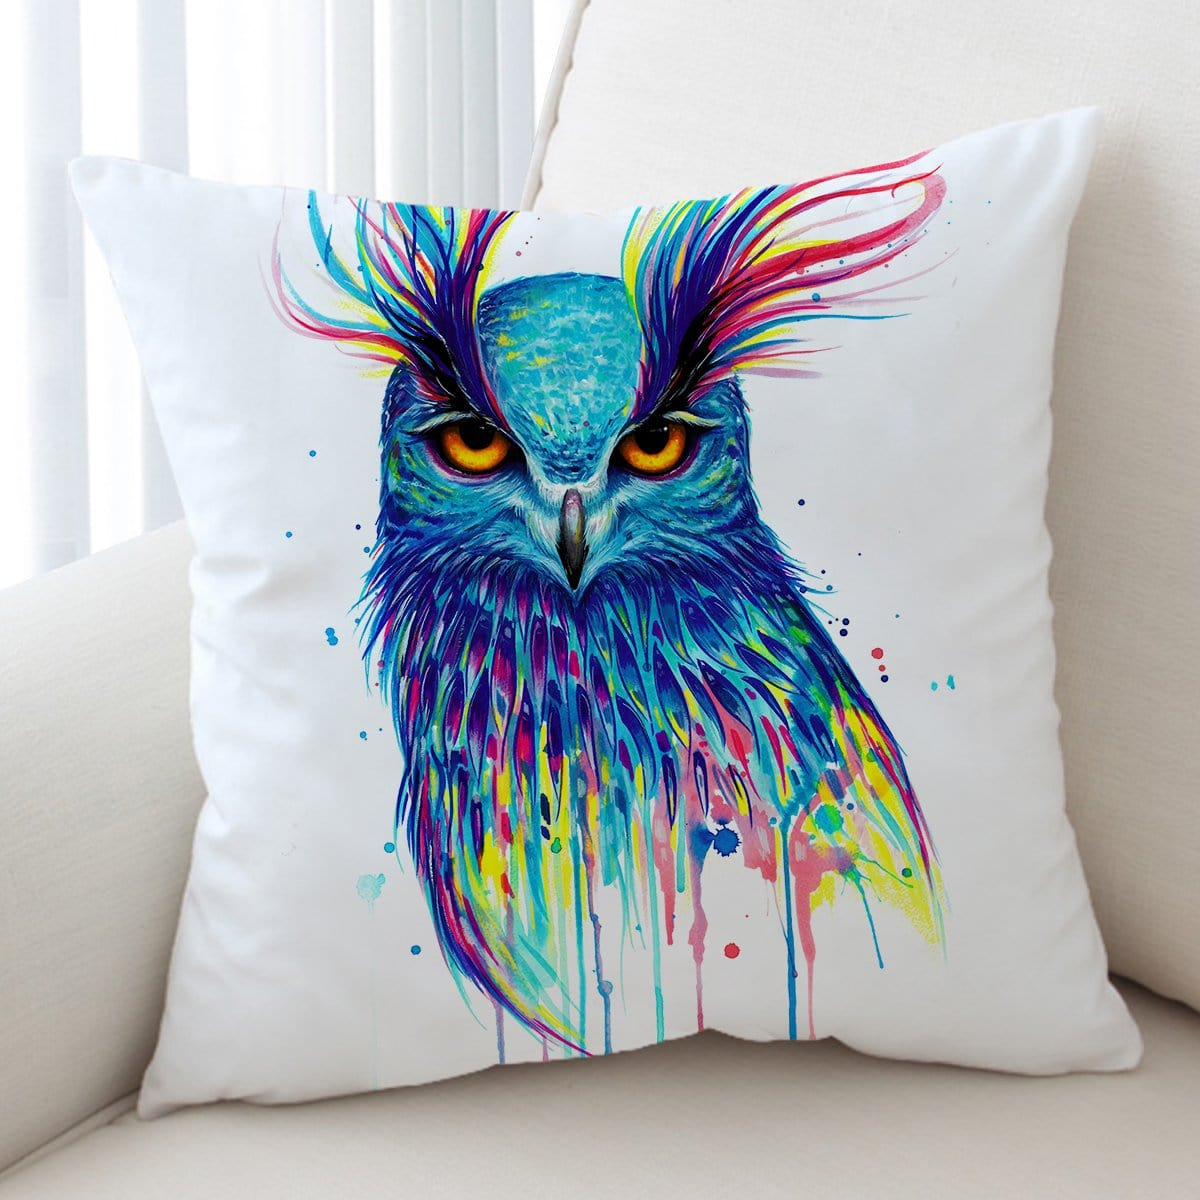 Into the Blue Owl Cushion Cover